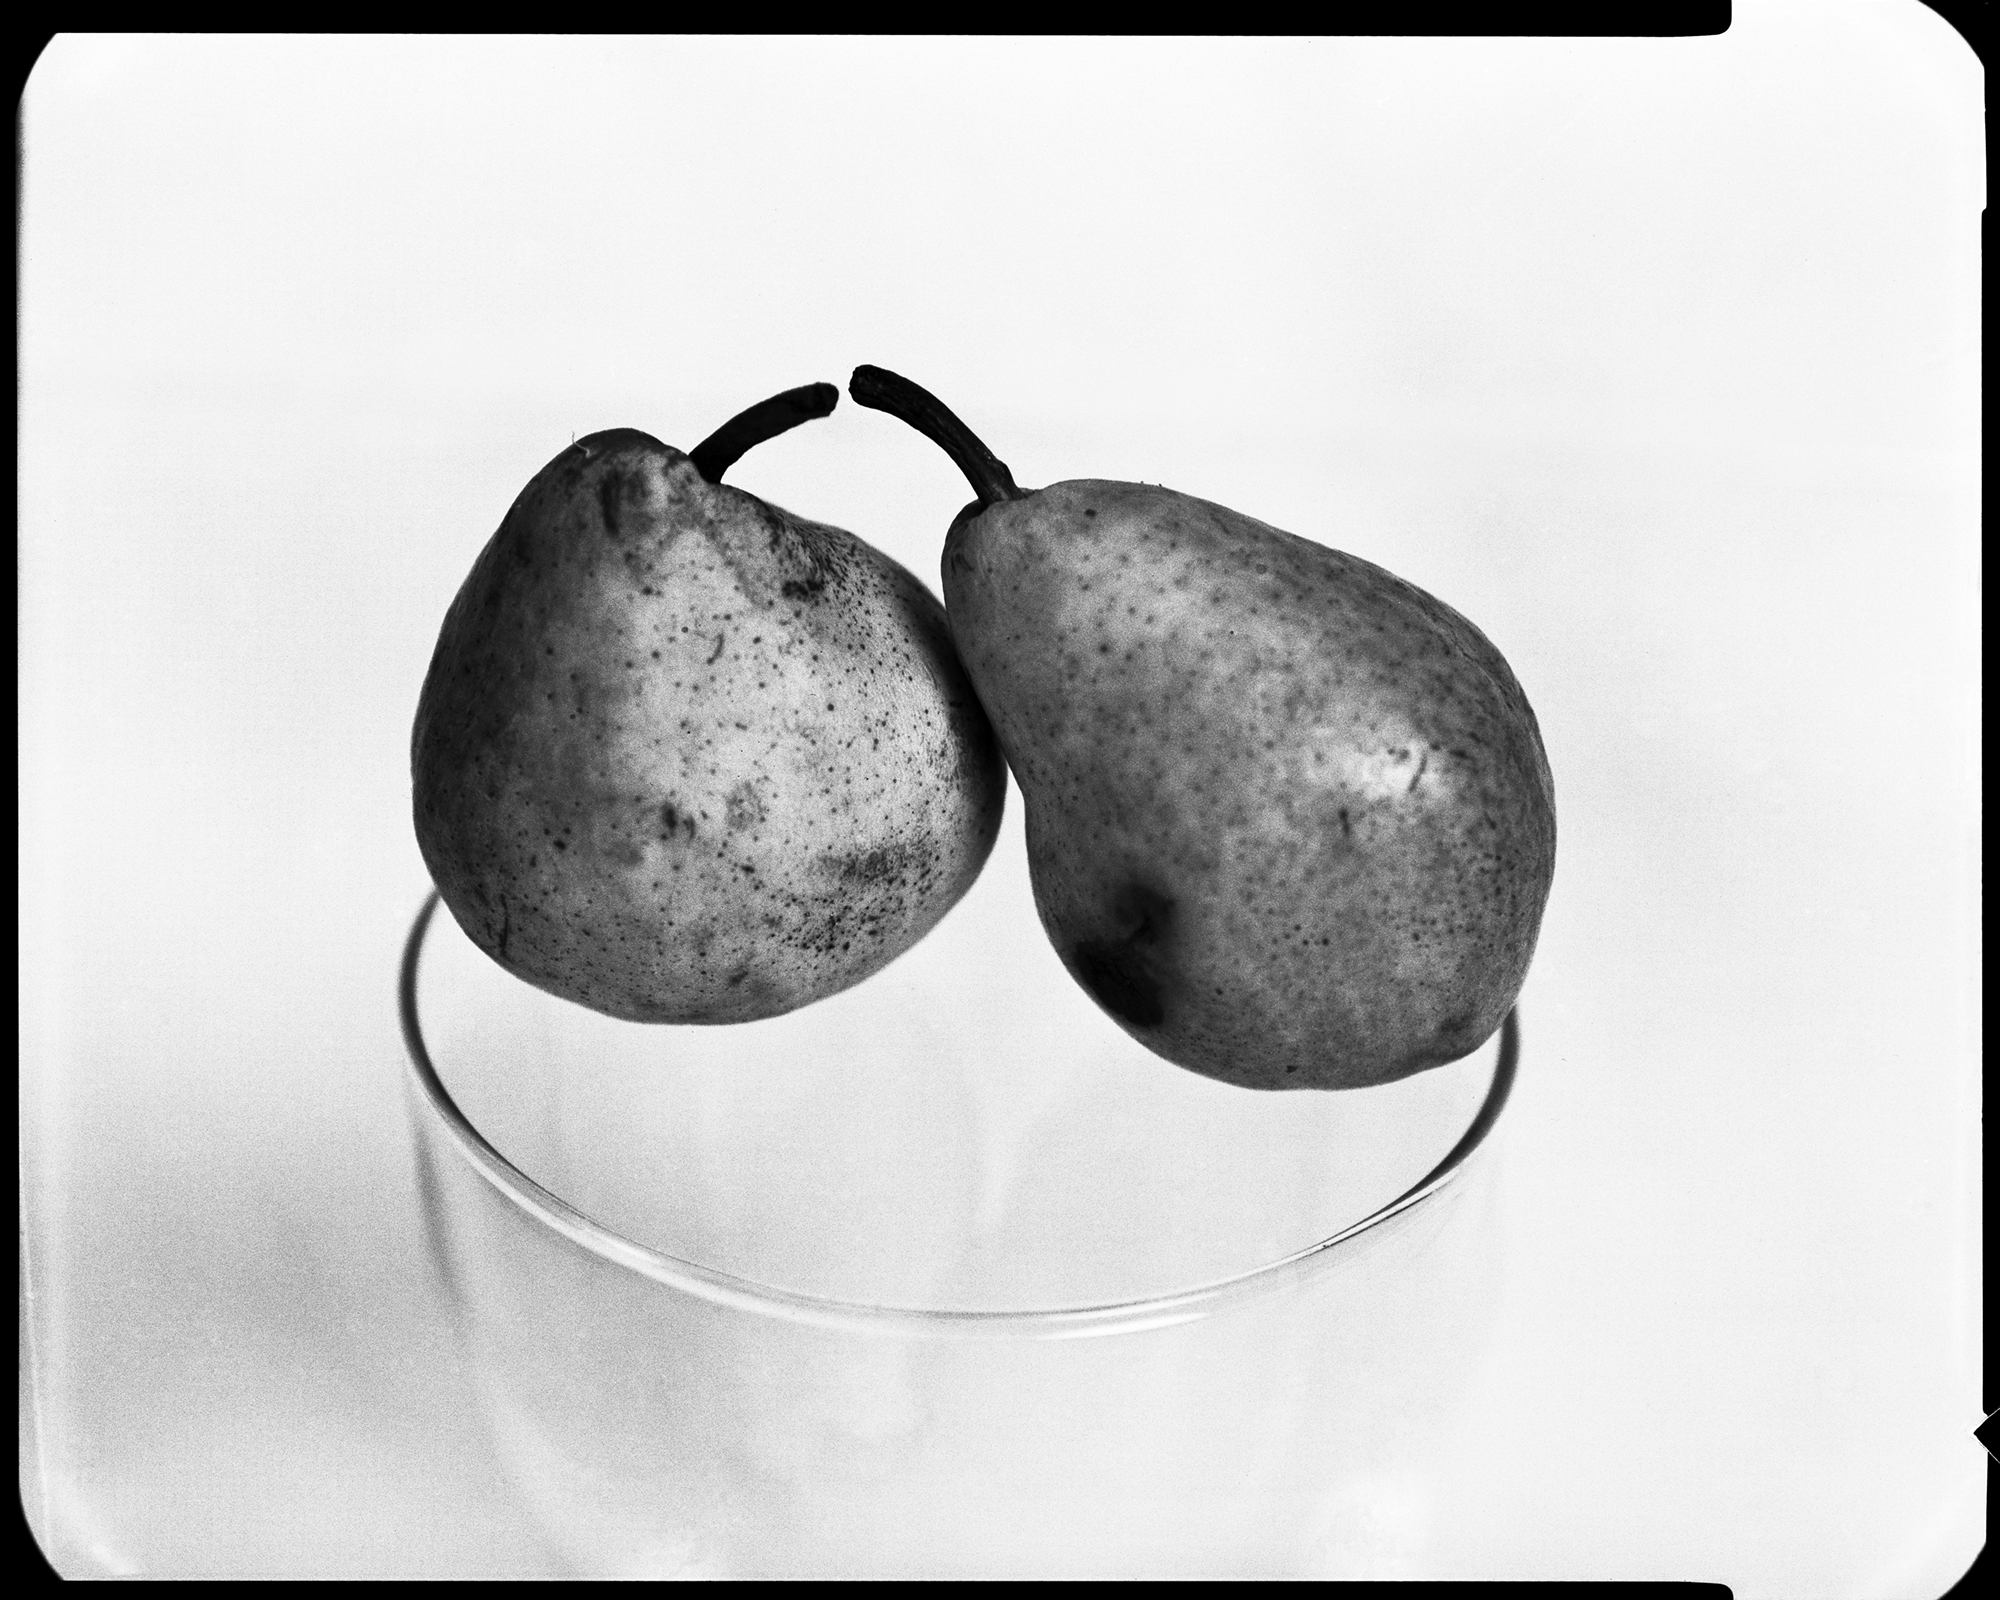 Pair of pears / Körte pár